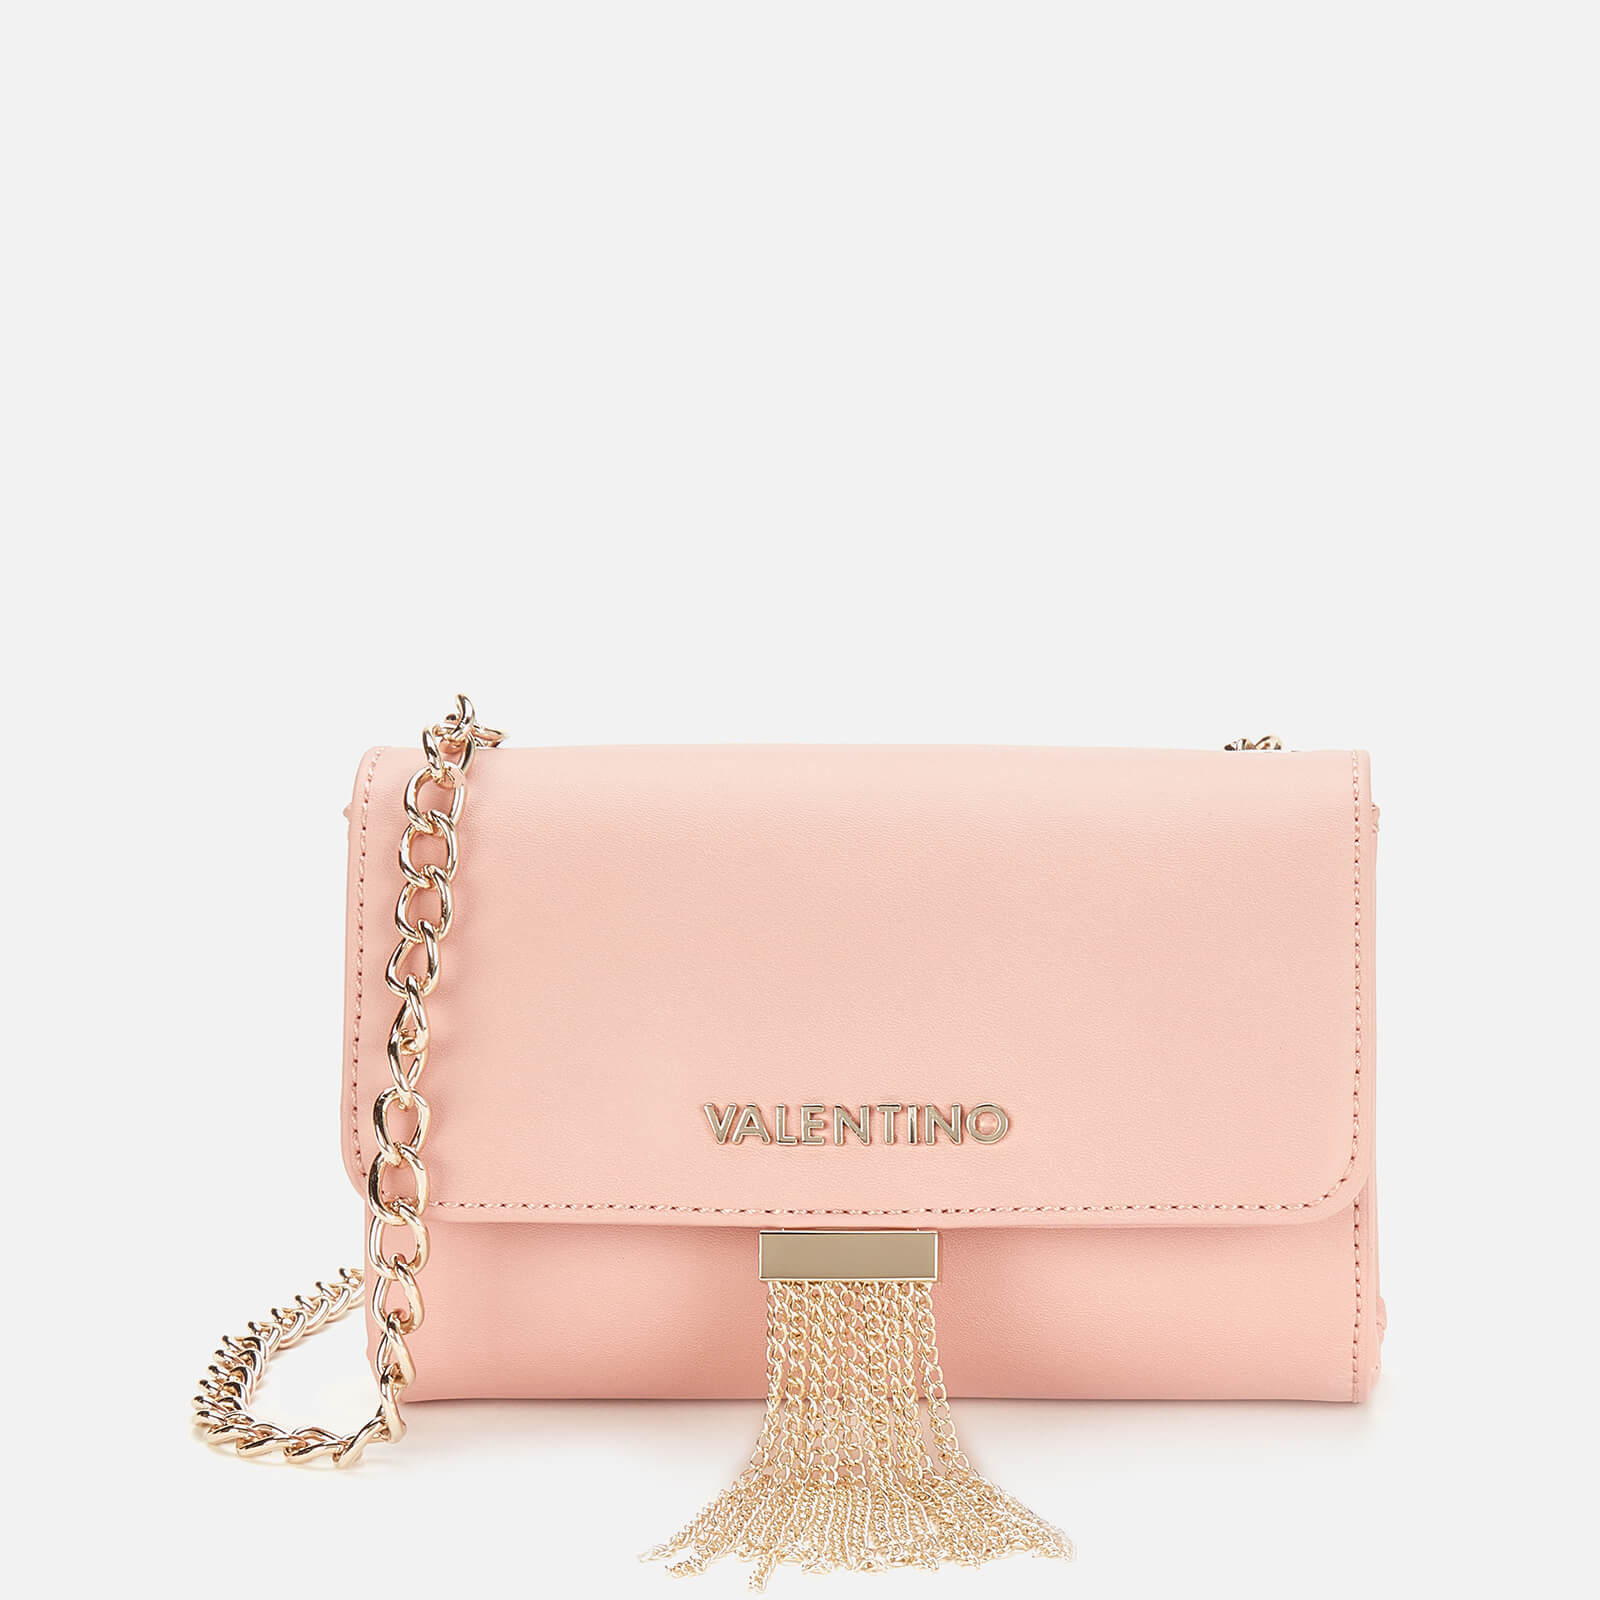 Valentino Bags Women's Piccadilly Small Shoulder Bag - Pink